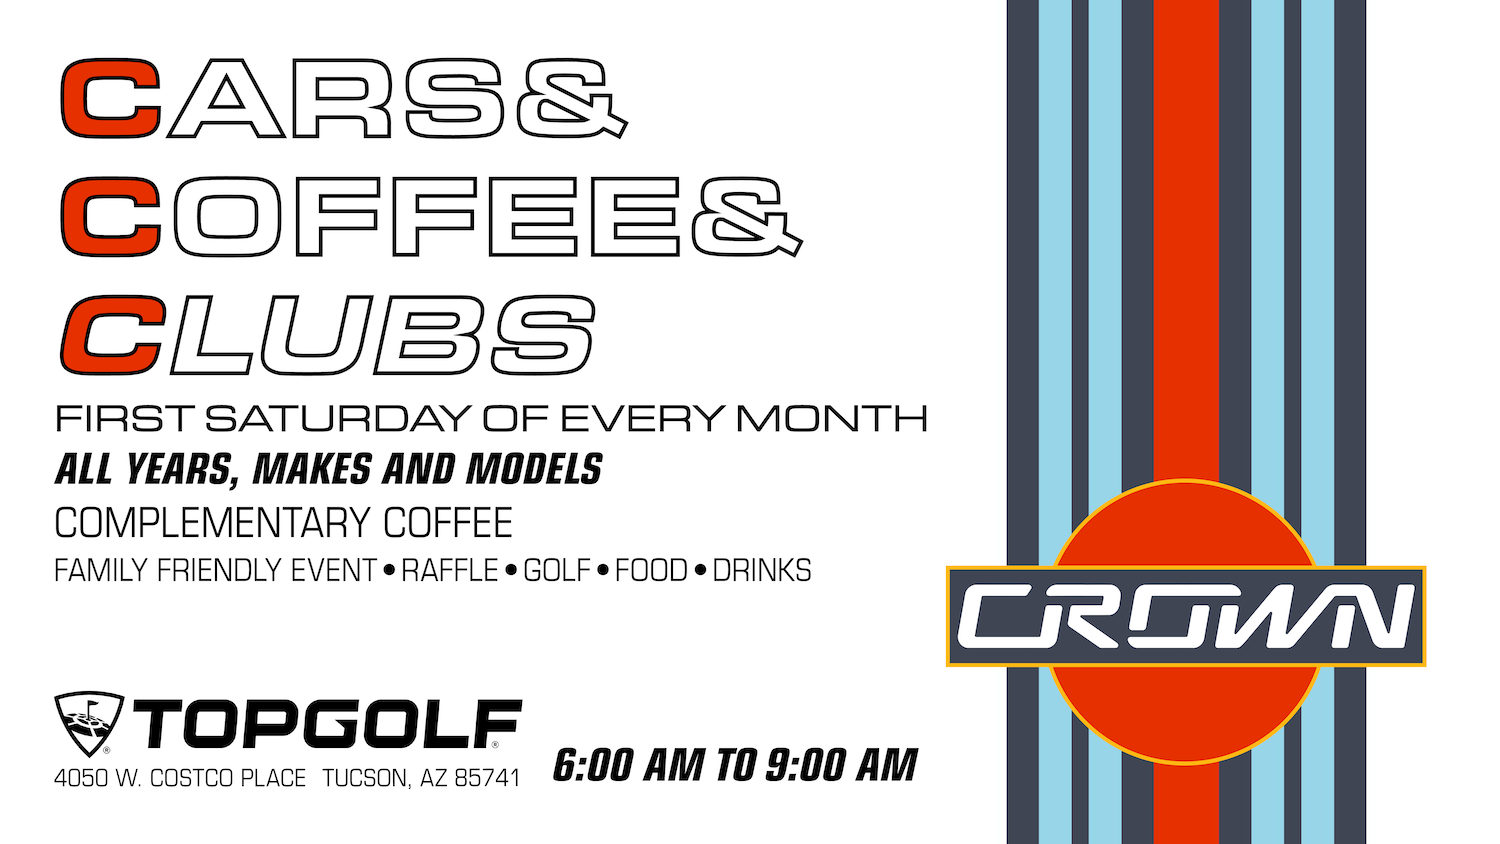 Cars & Coffee & Clubs Topgolf Tucson Arizona